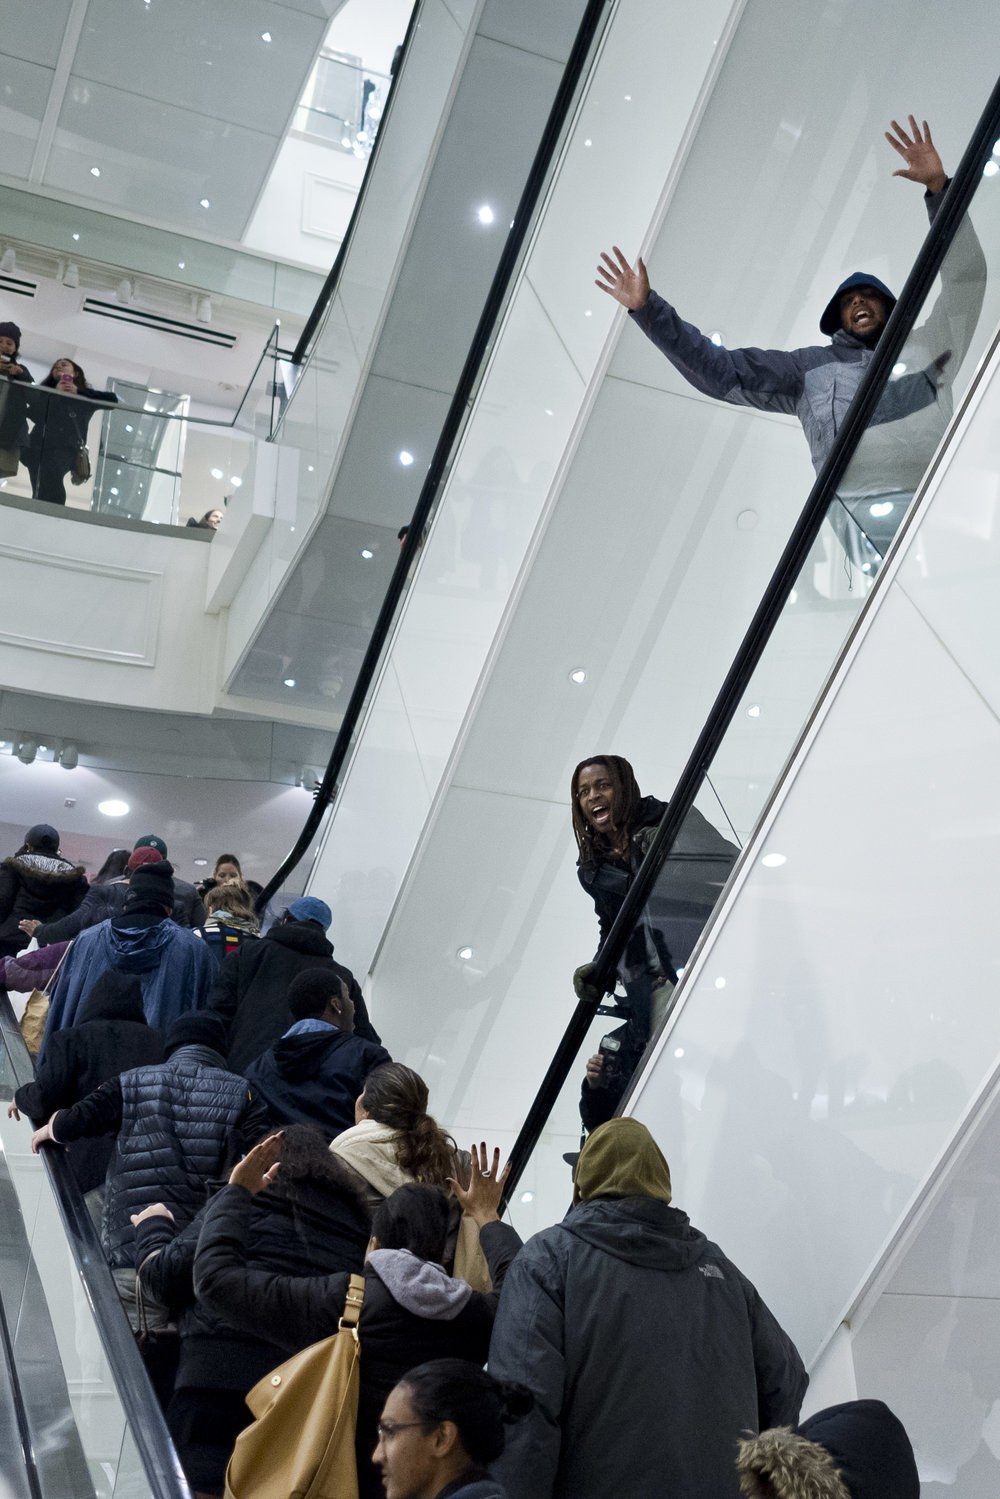 Demonstrators march through multiple floors of Forever 21 in Times Square on December 6th, 2014. Weeks of protest followed a Staten Island grand jury's decision on December 3rd 2014 not to indict Officer Daniel Pantaleo in the killing of Eric Garner.